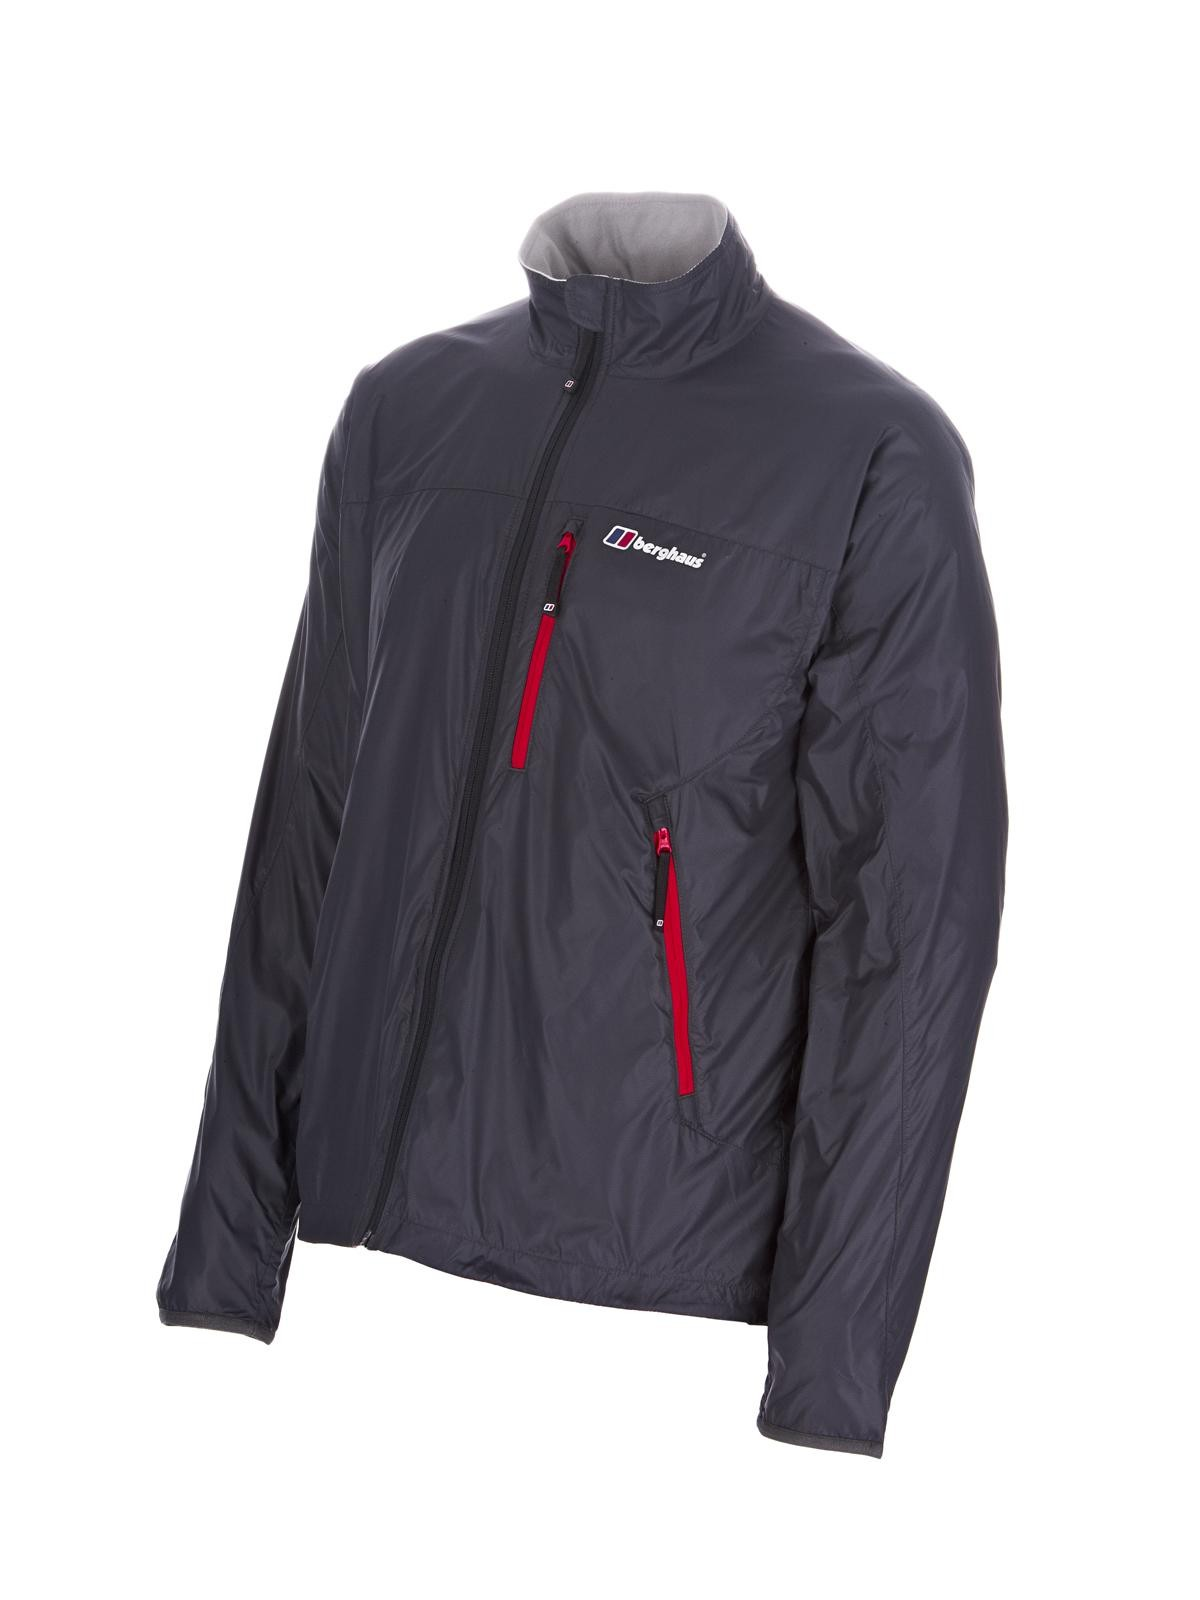 Amazon Com Used Ski Boots >> Berghaus Tyree Men's Windproof Jacket from Berghaus for £90.00